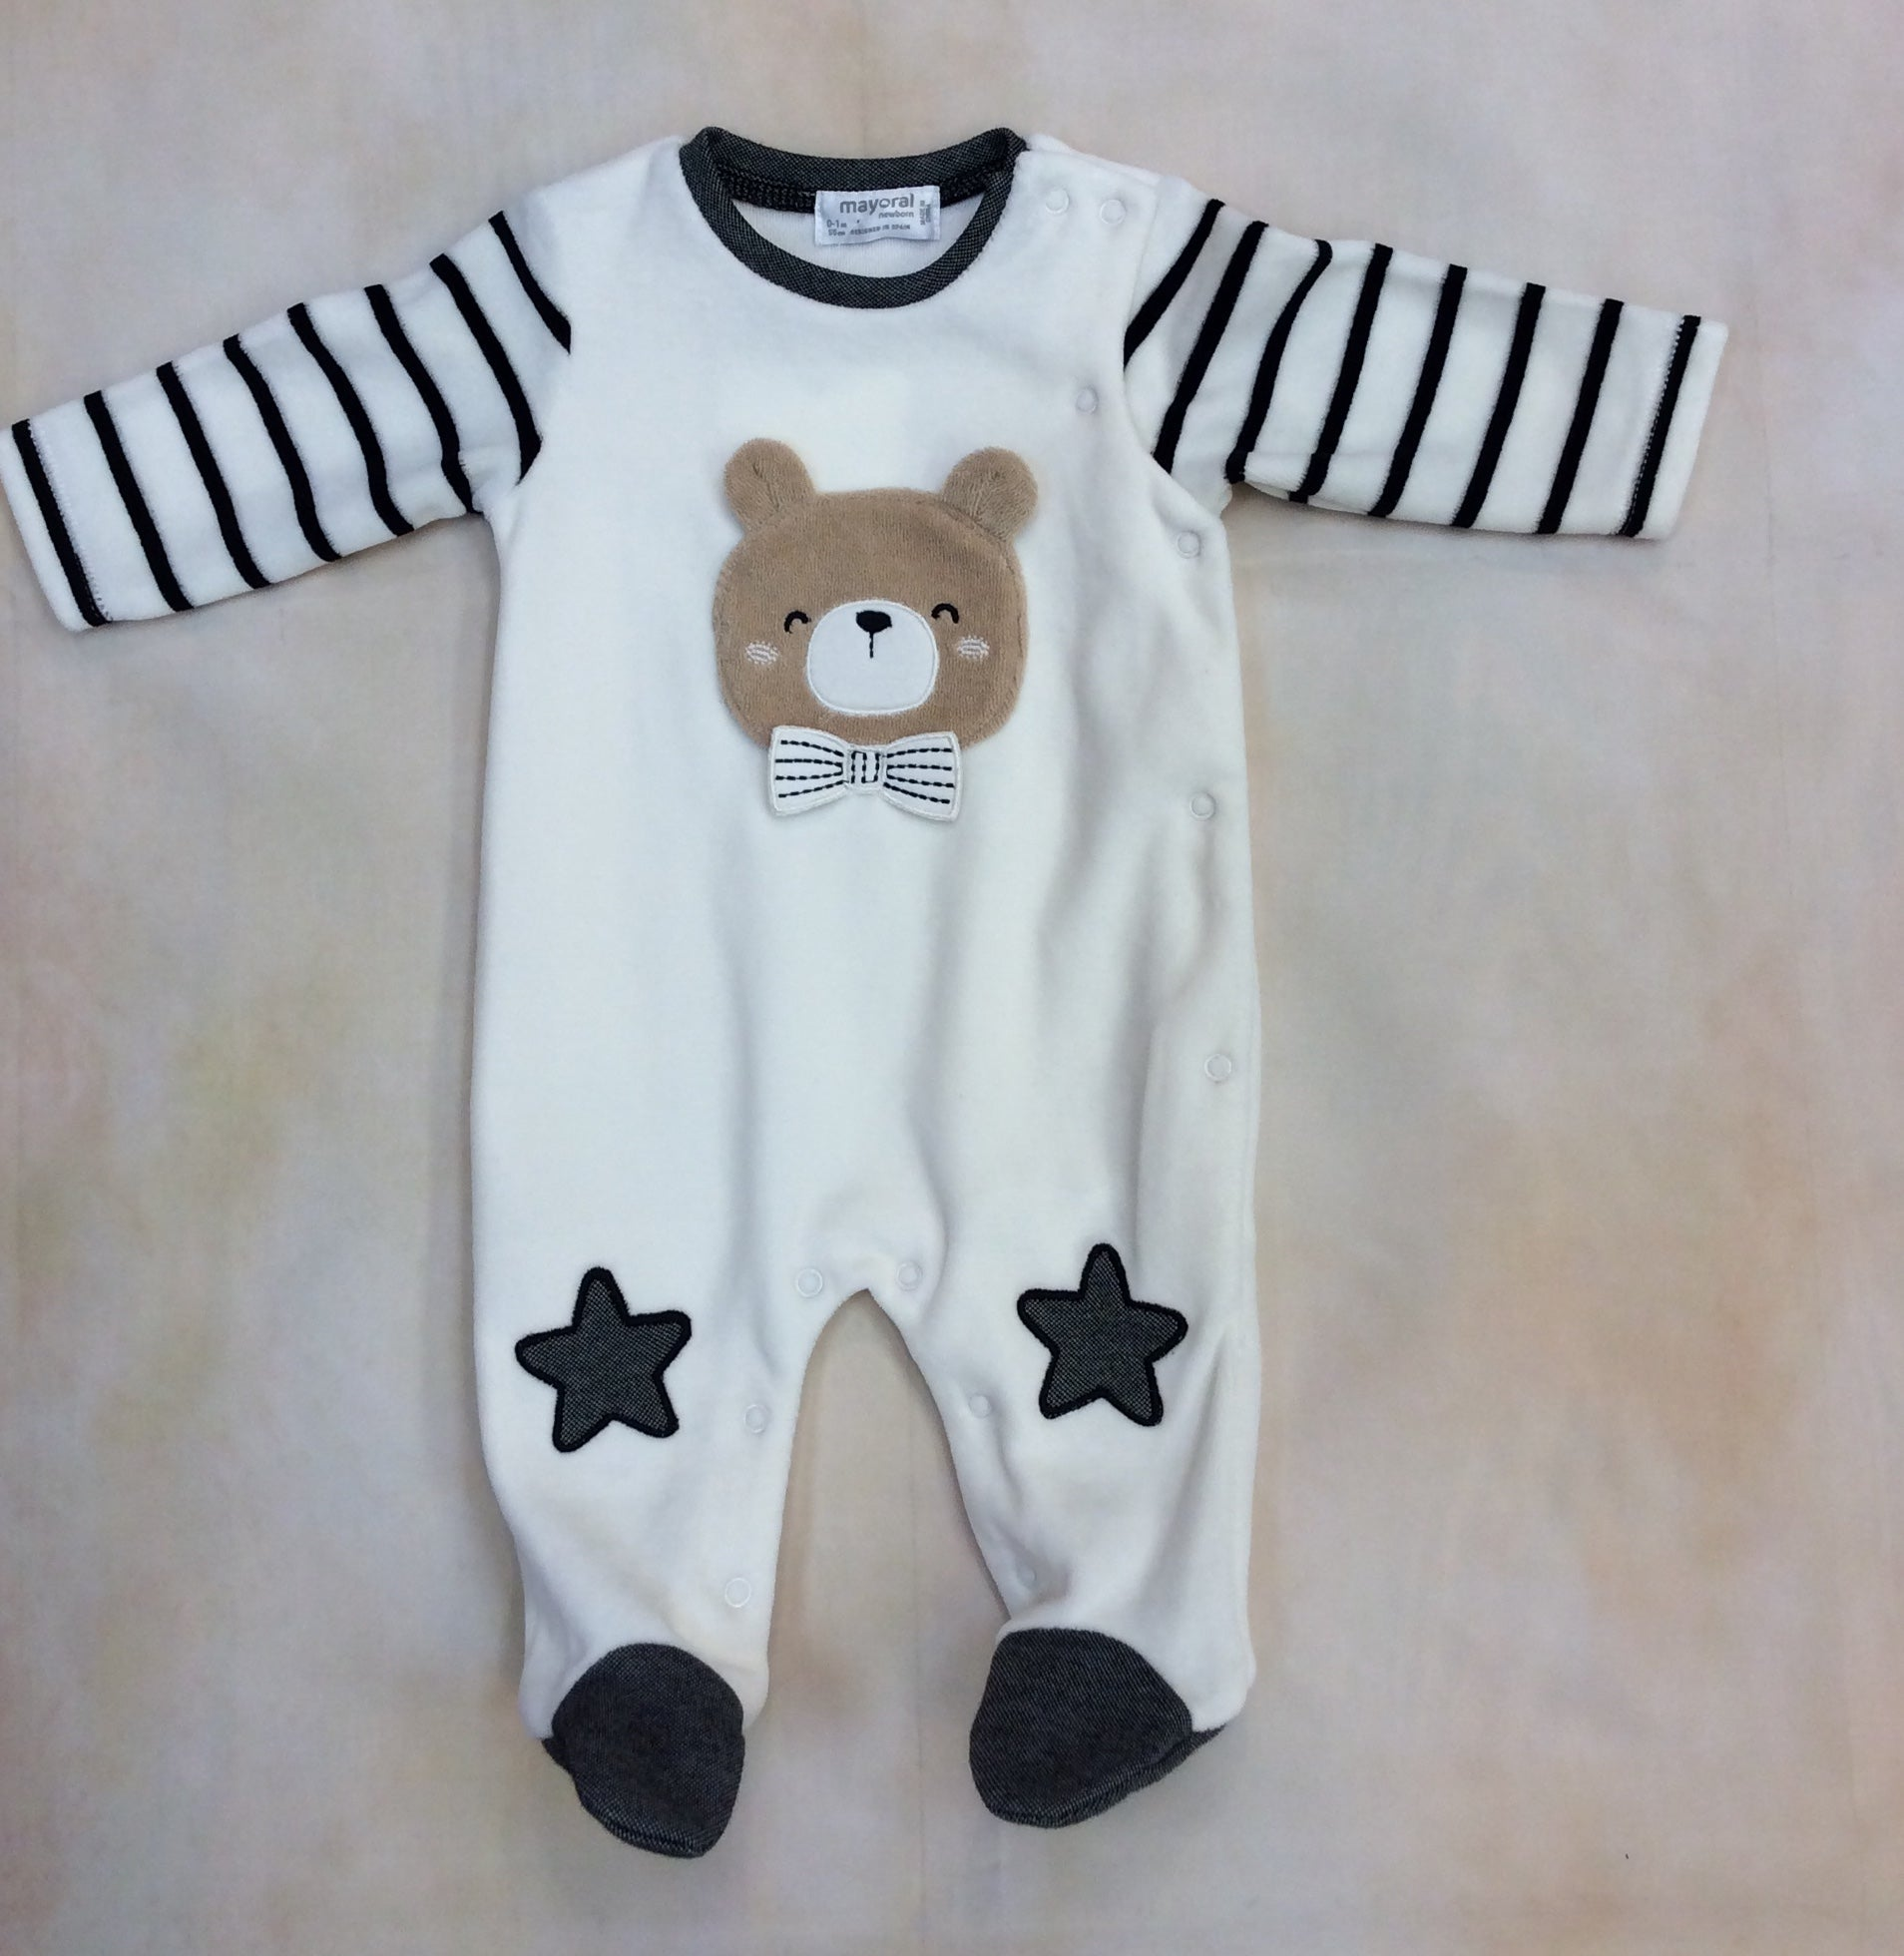 2727 Baby boy Cream & Gray & Black side snap baby layette footed outfit